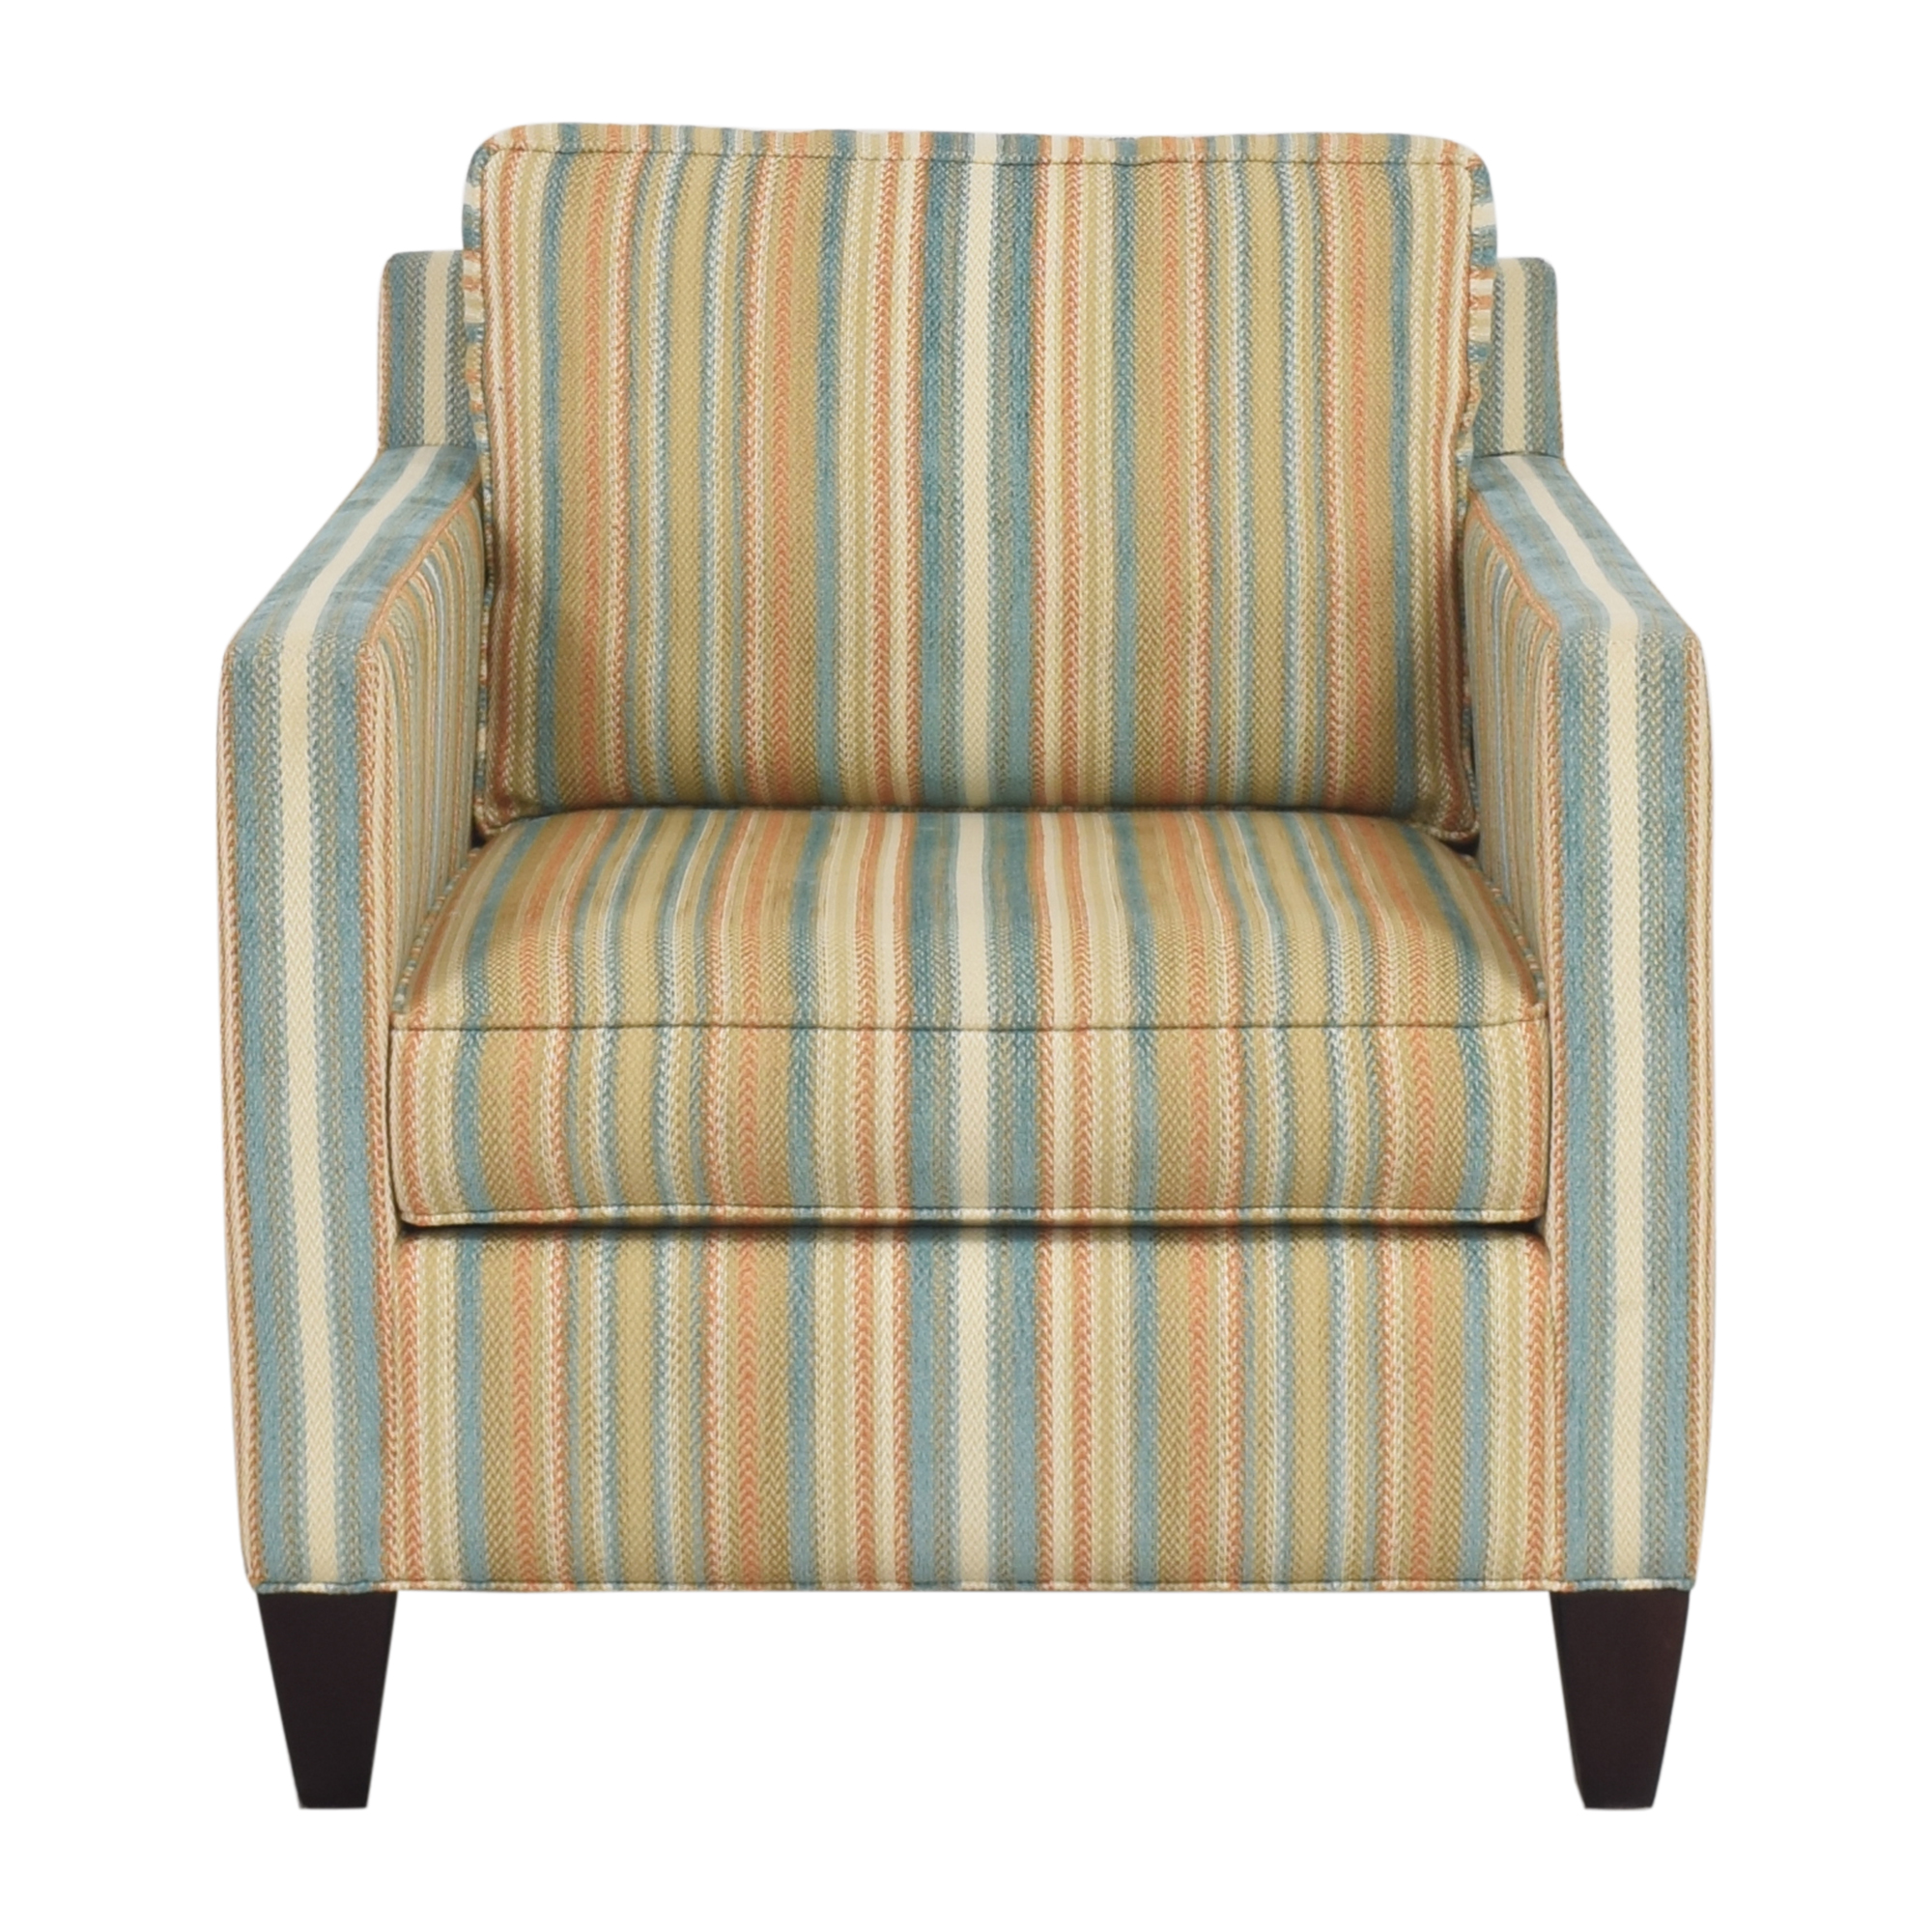 shop Thomasville Striped Accent Chair Thomasville